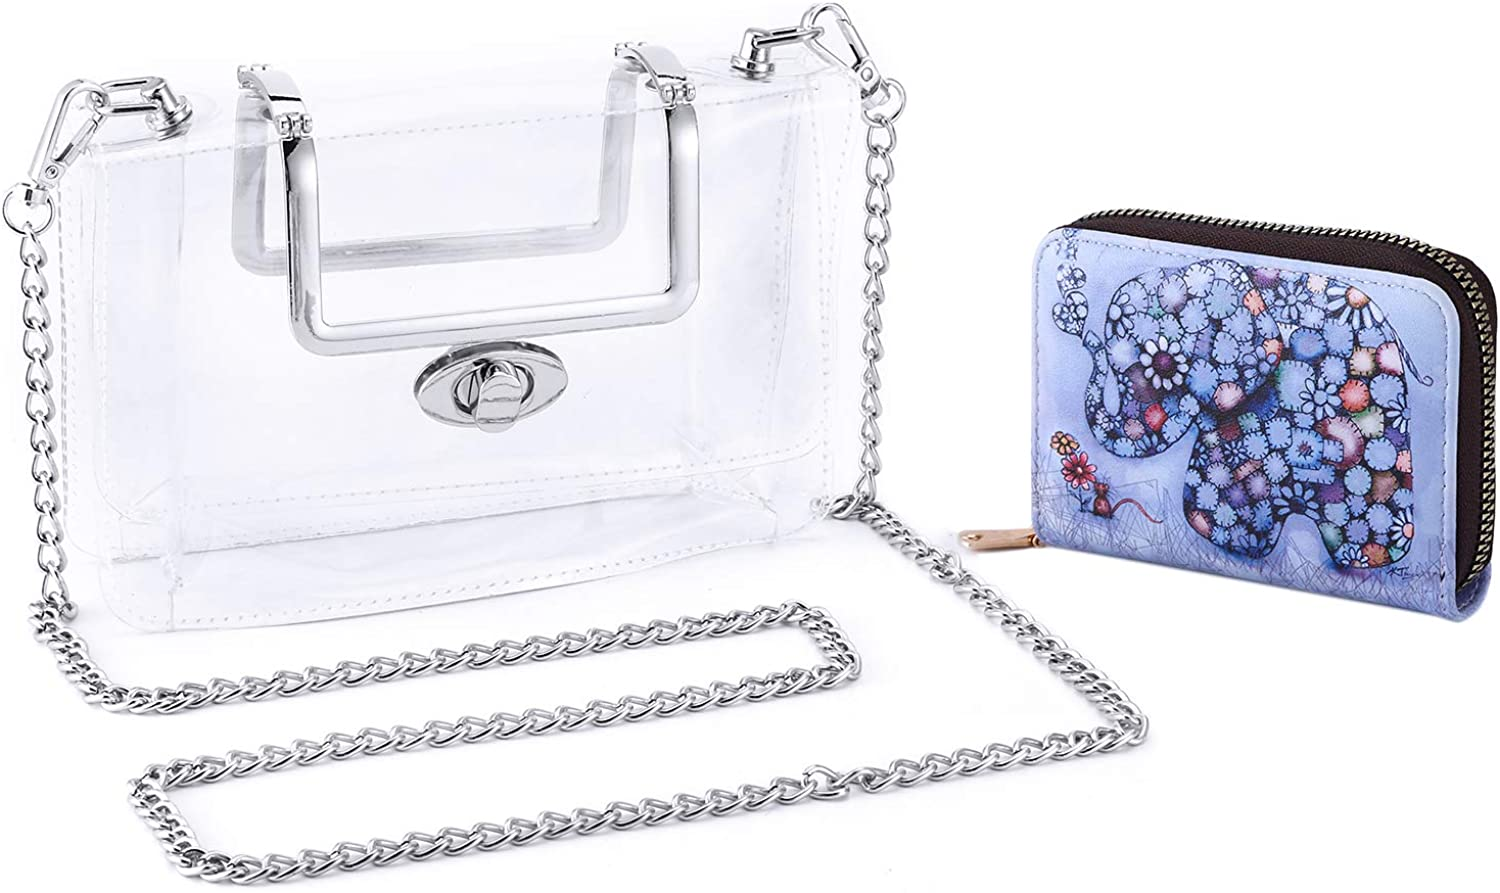 MOETYANG Womens Transparent Clutch Clear Purse Crossbody Shoulder Bags with Removable Shoulder Strap NFL/&PGA Stadium Approved Bags